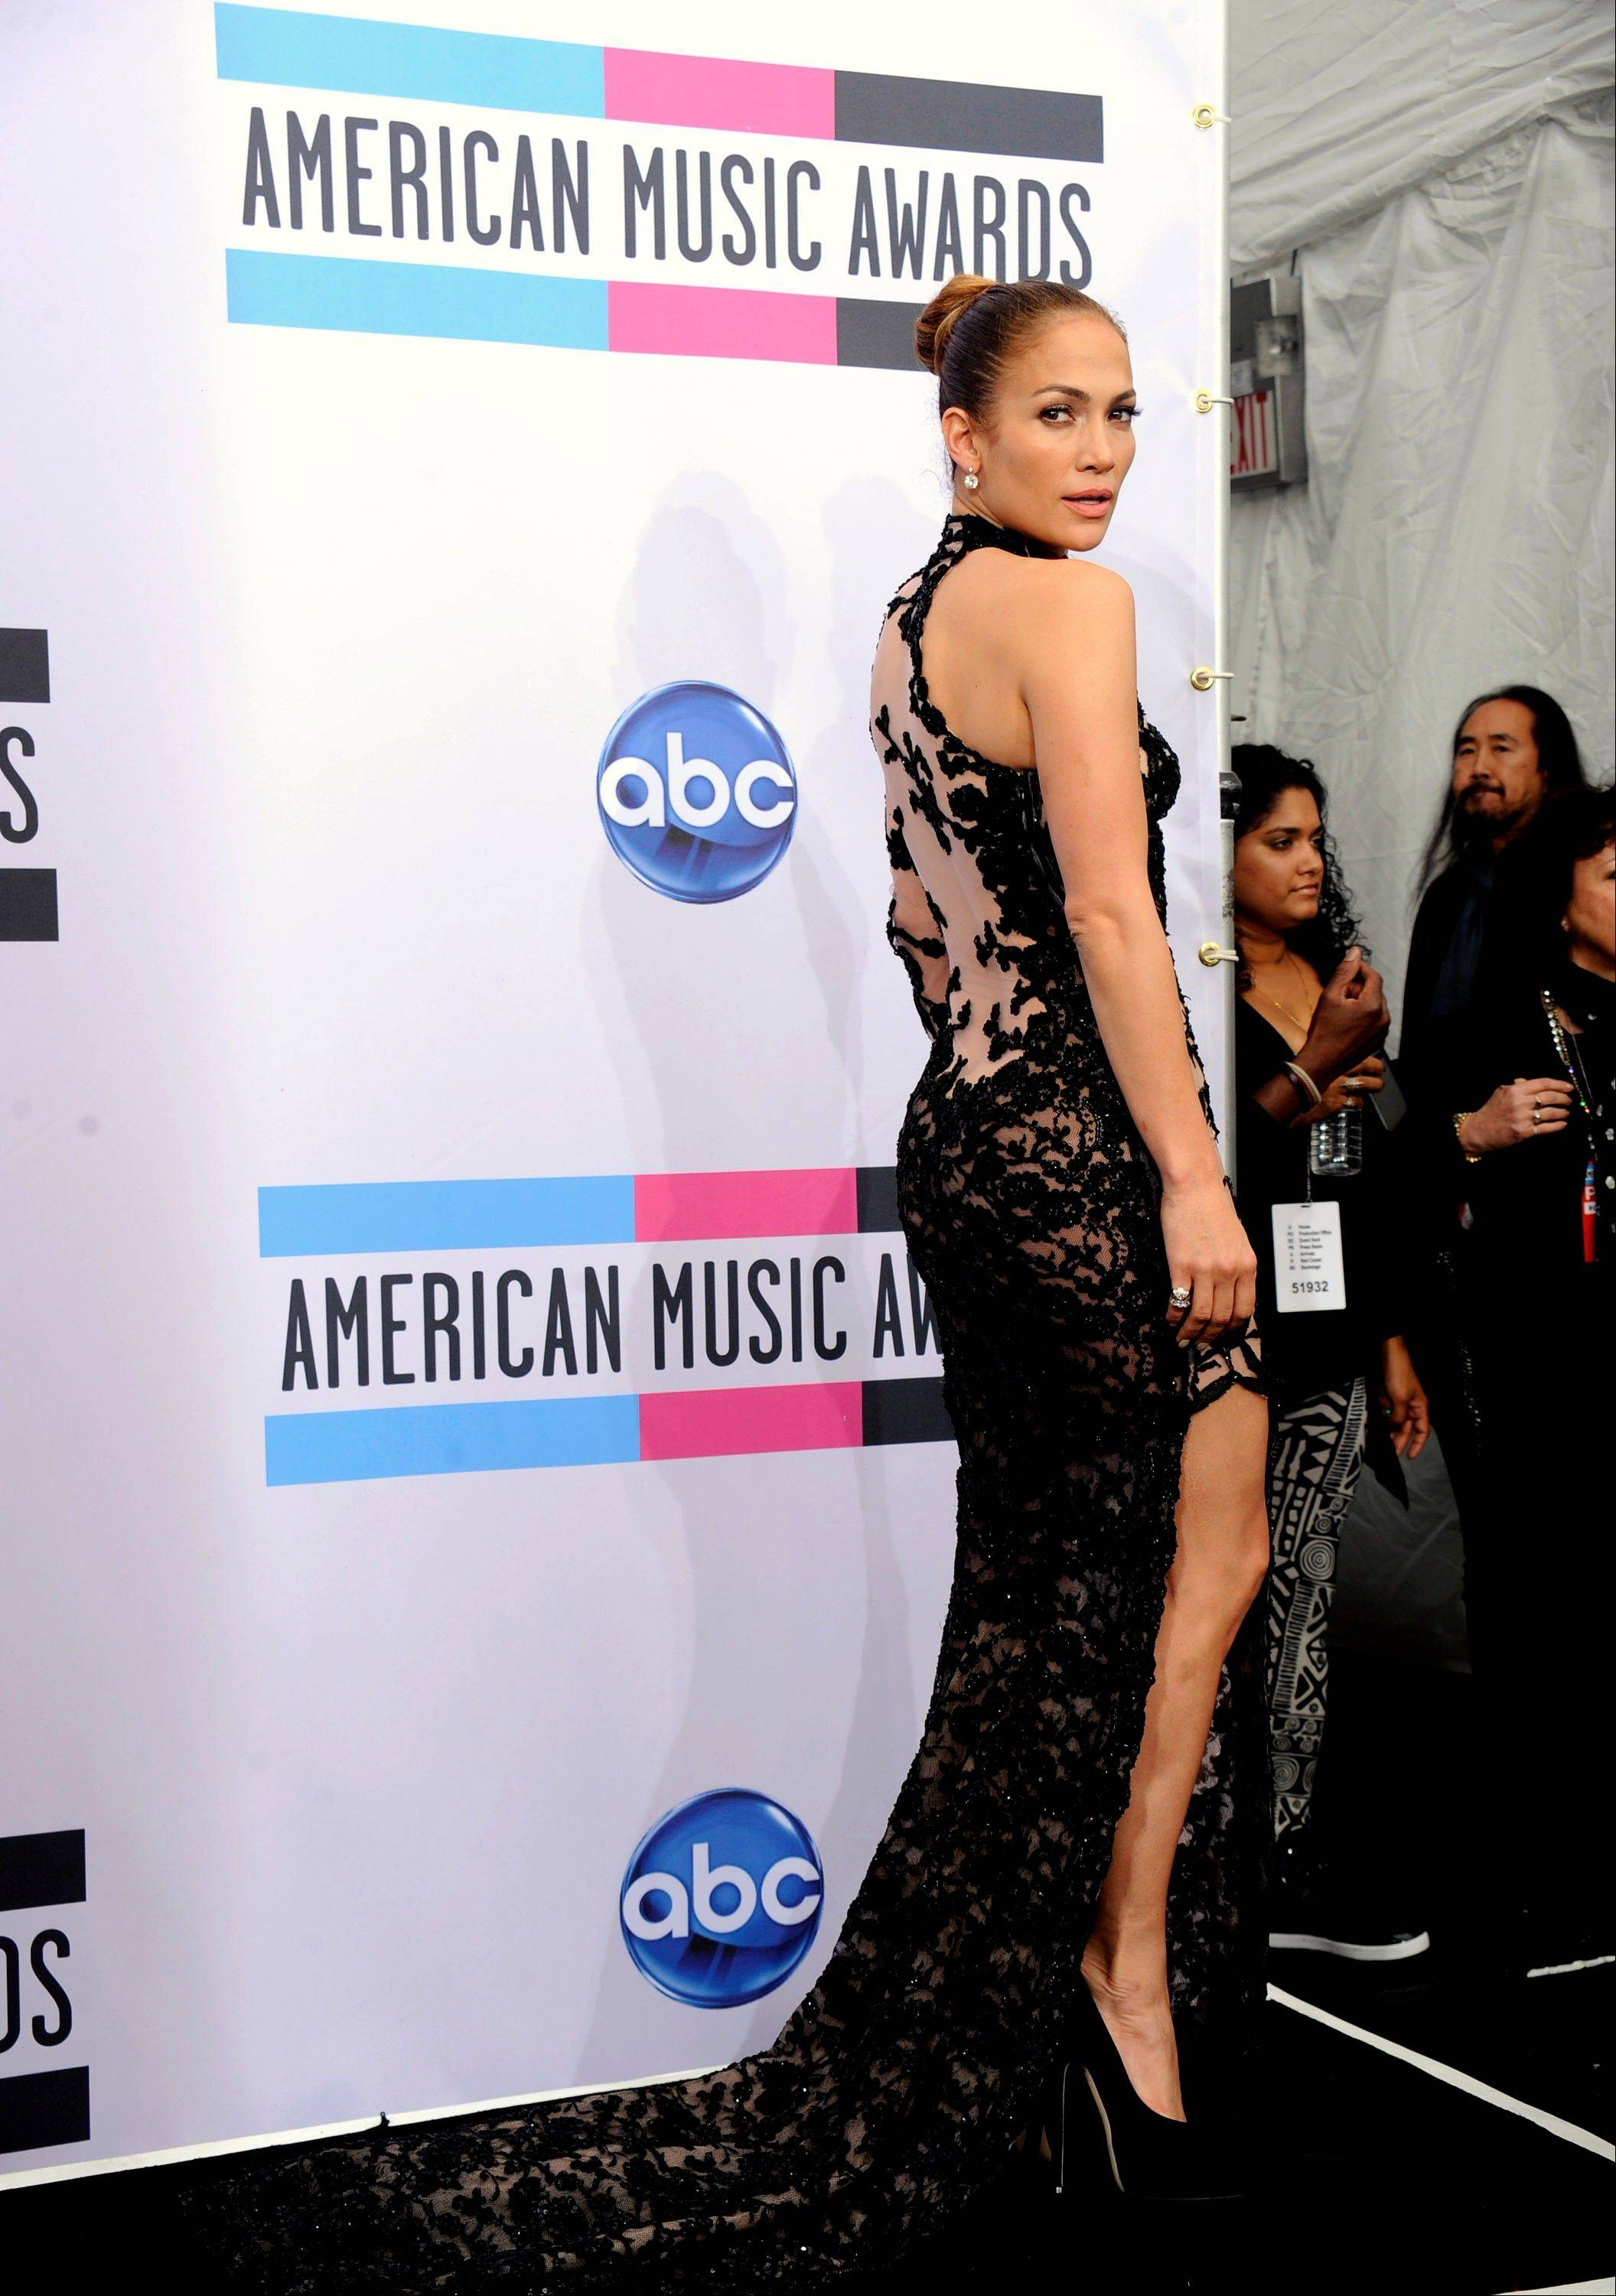 Jennifer Lopez poses backstage at the 39th Annual American Music Awards on Sunday, Nov. 20, 2011 in Los Angeles.